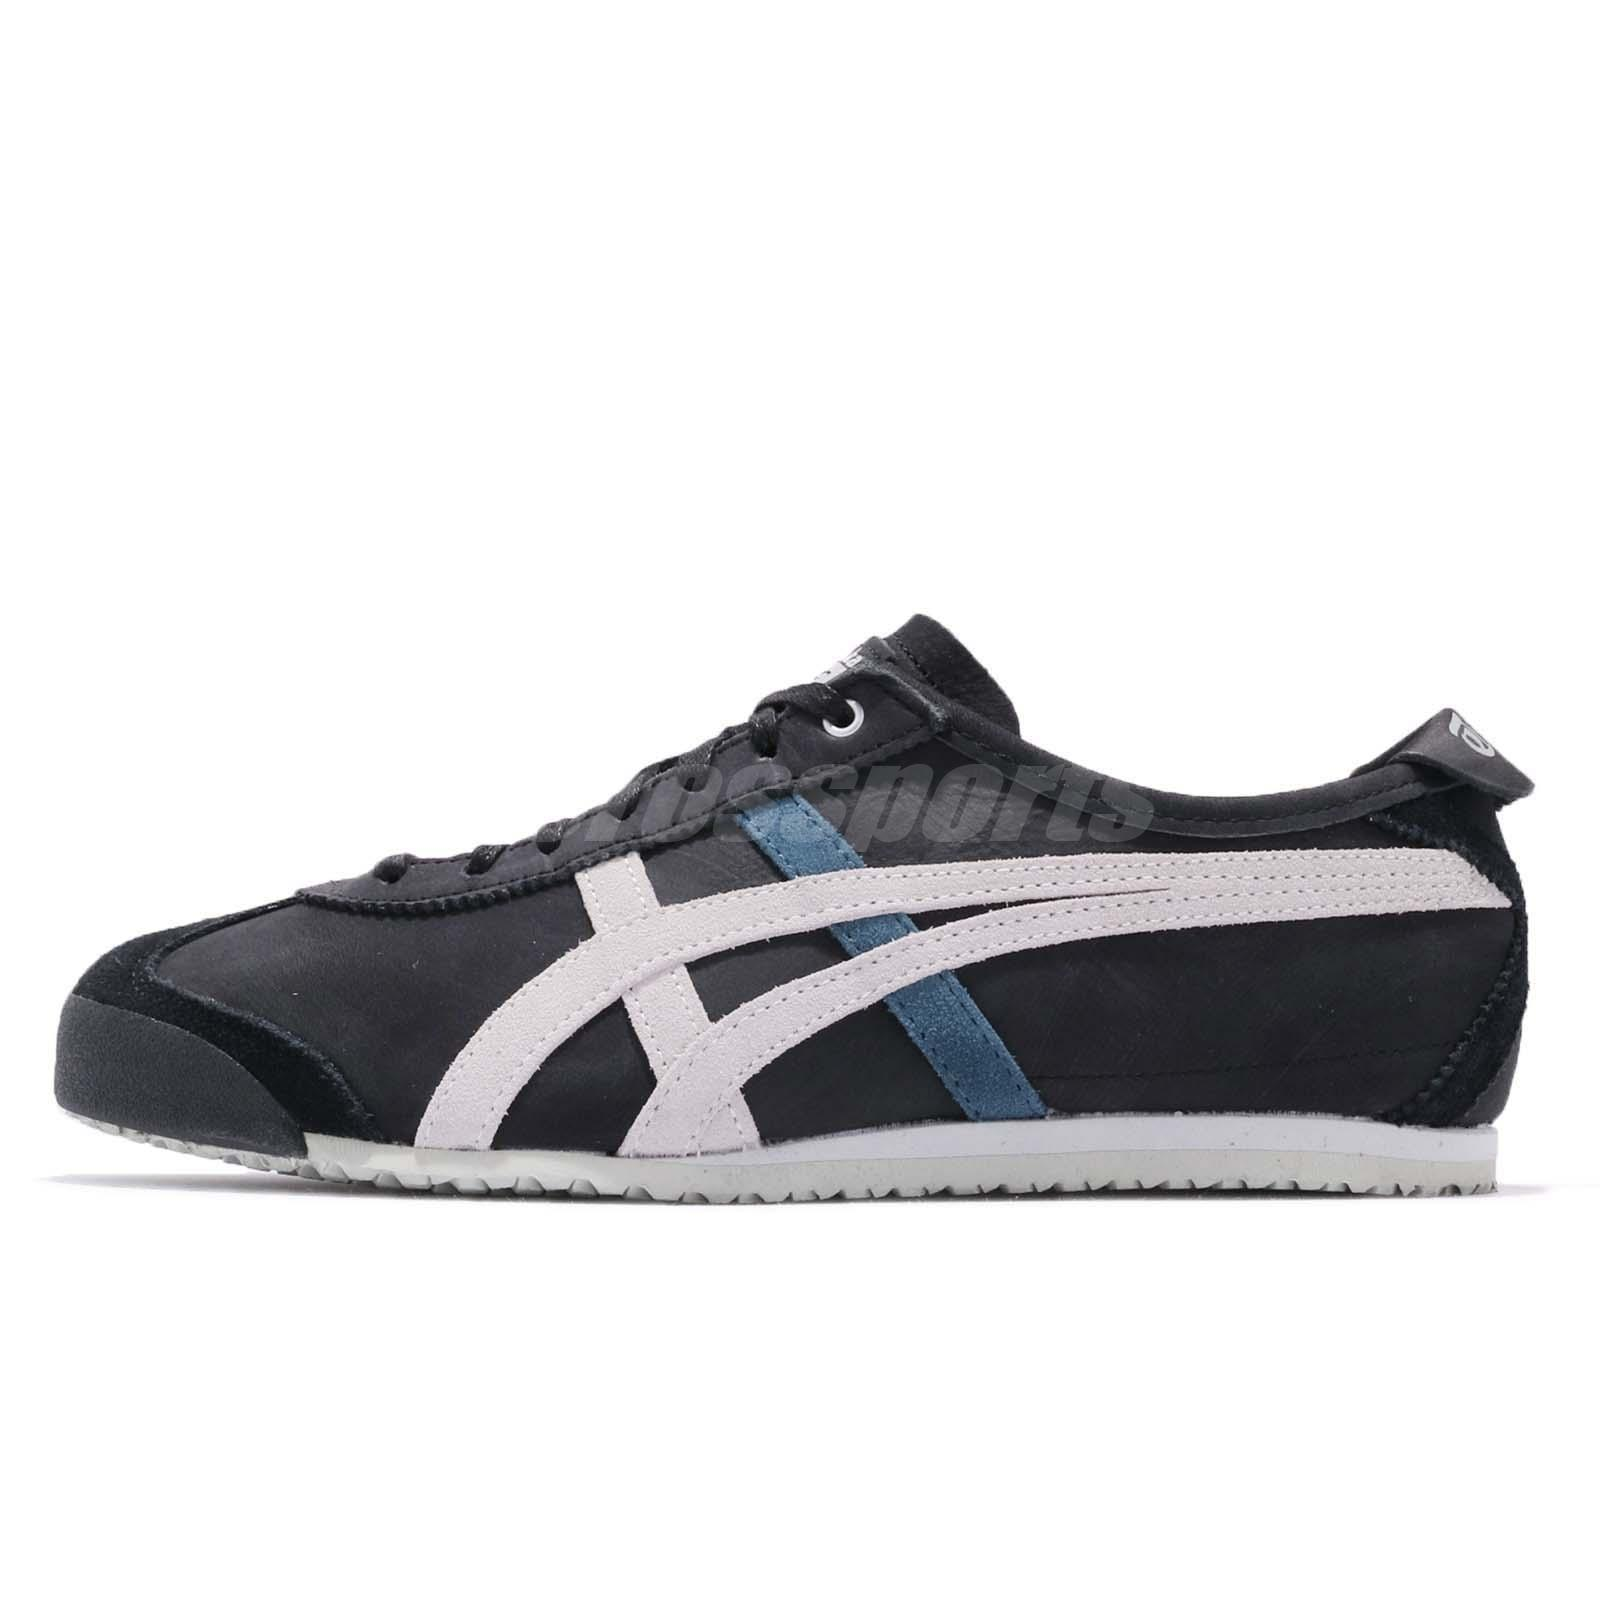 size 40 d14b2 cd3b8 Details about Asics Onitsuka Tiger Mexico 66 Black Grey Men Vintage Running  Shoes D832L-9096